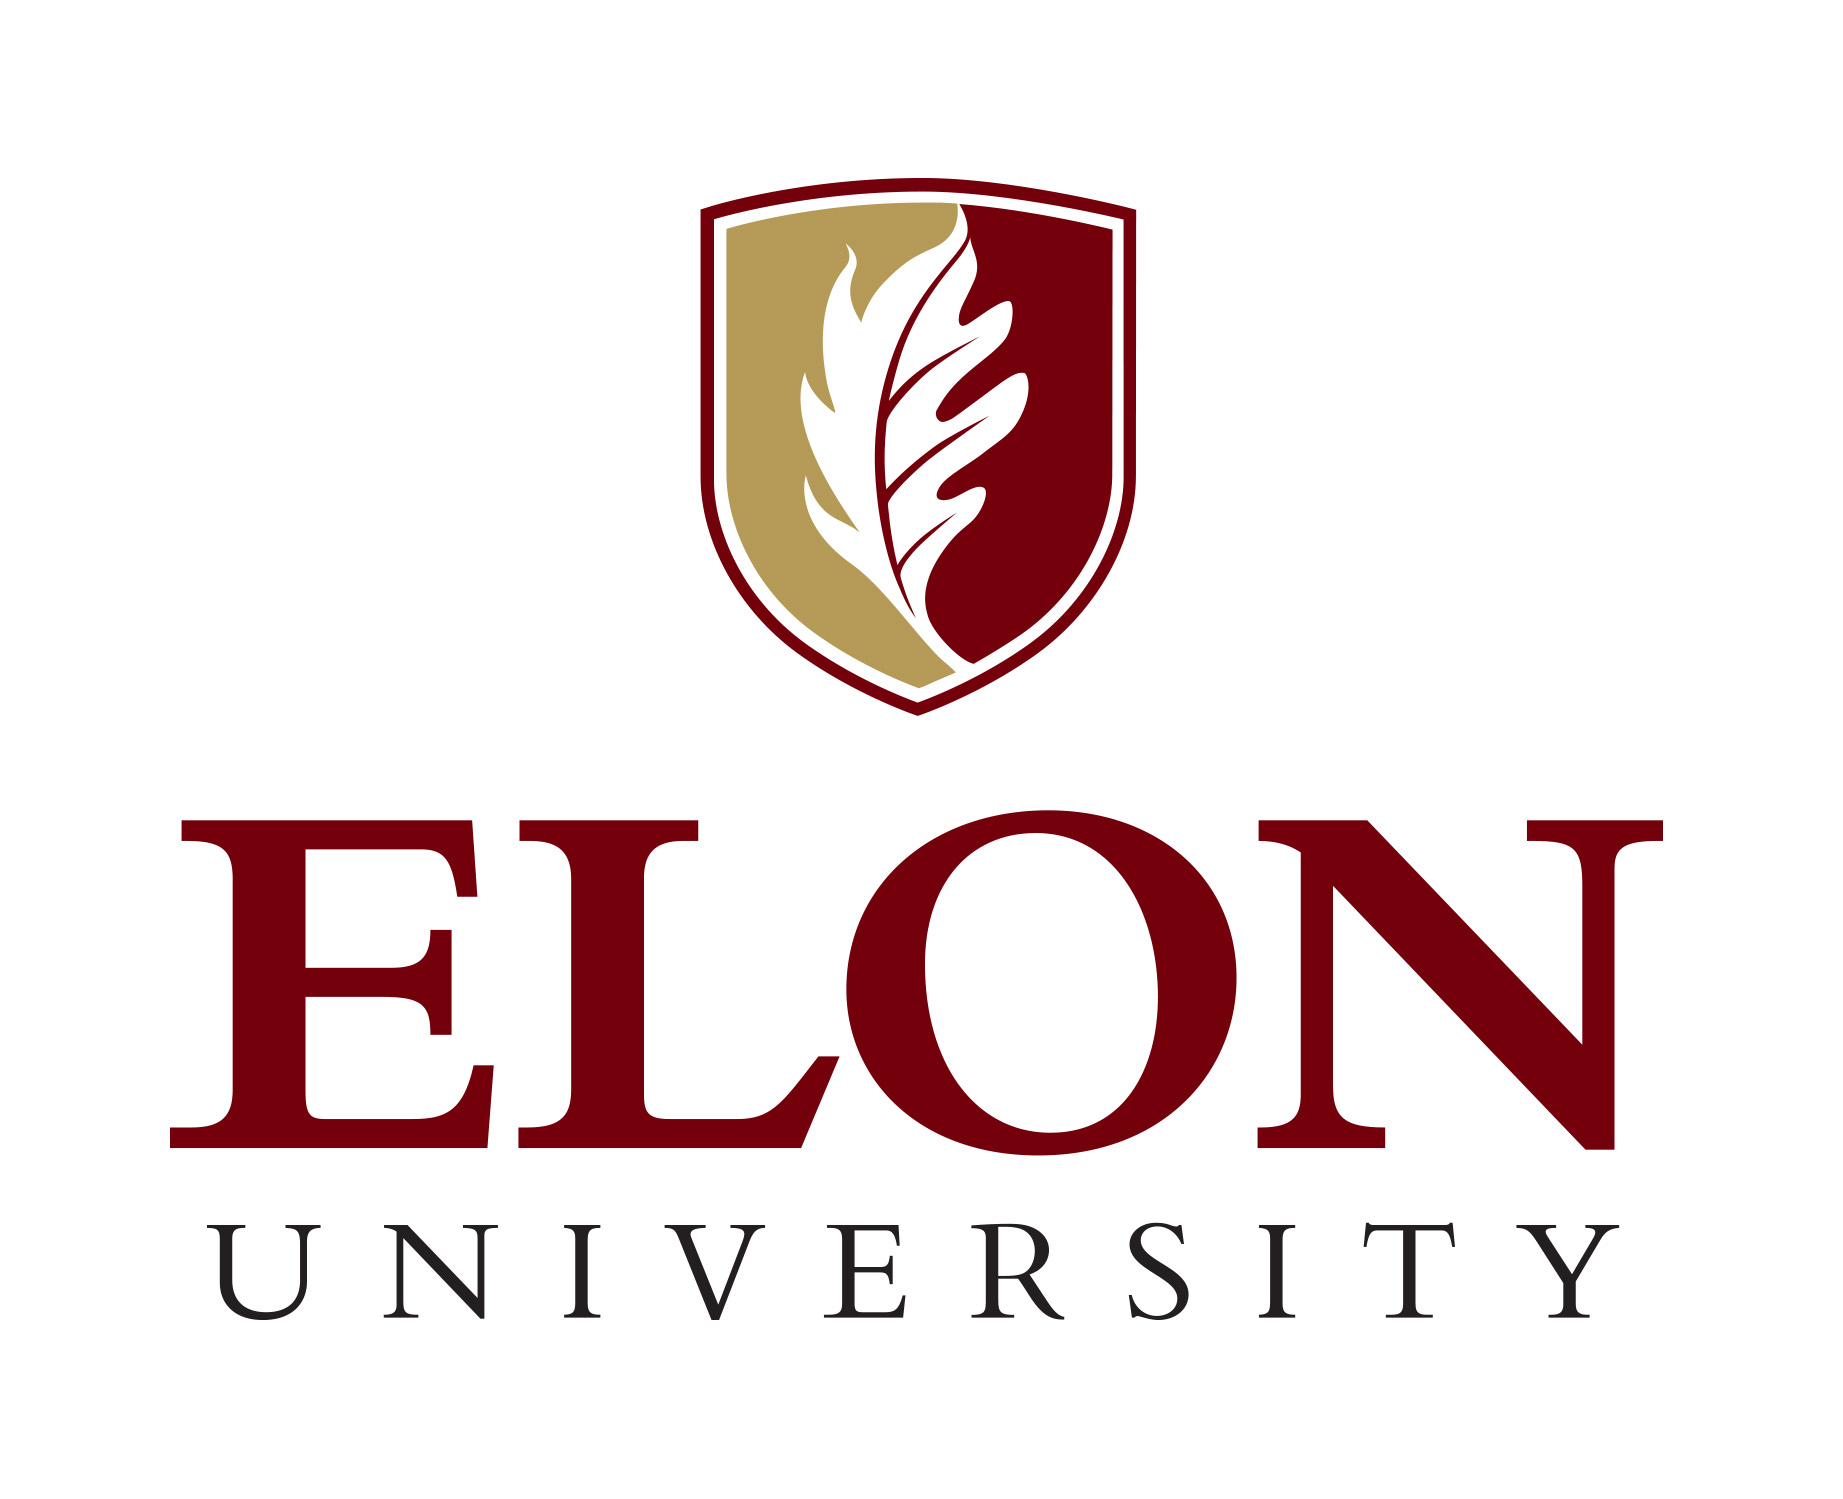 elon-signature-primary-centered-maroon-gold-blk-rgb-300dpi